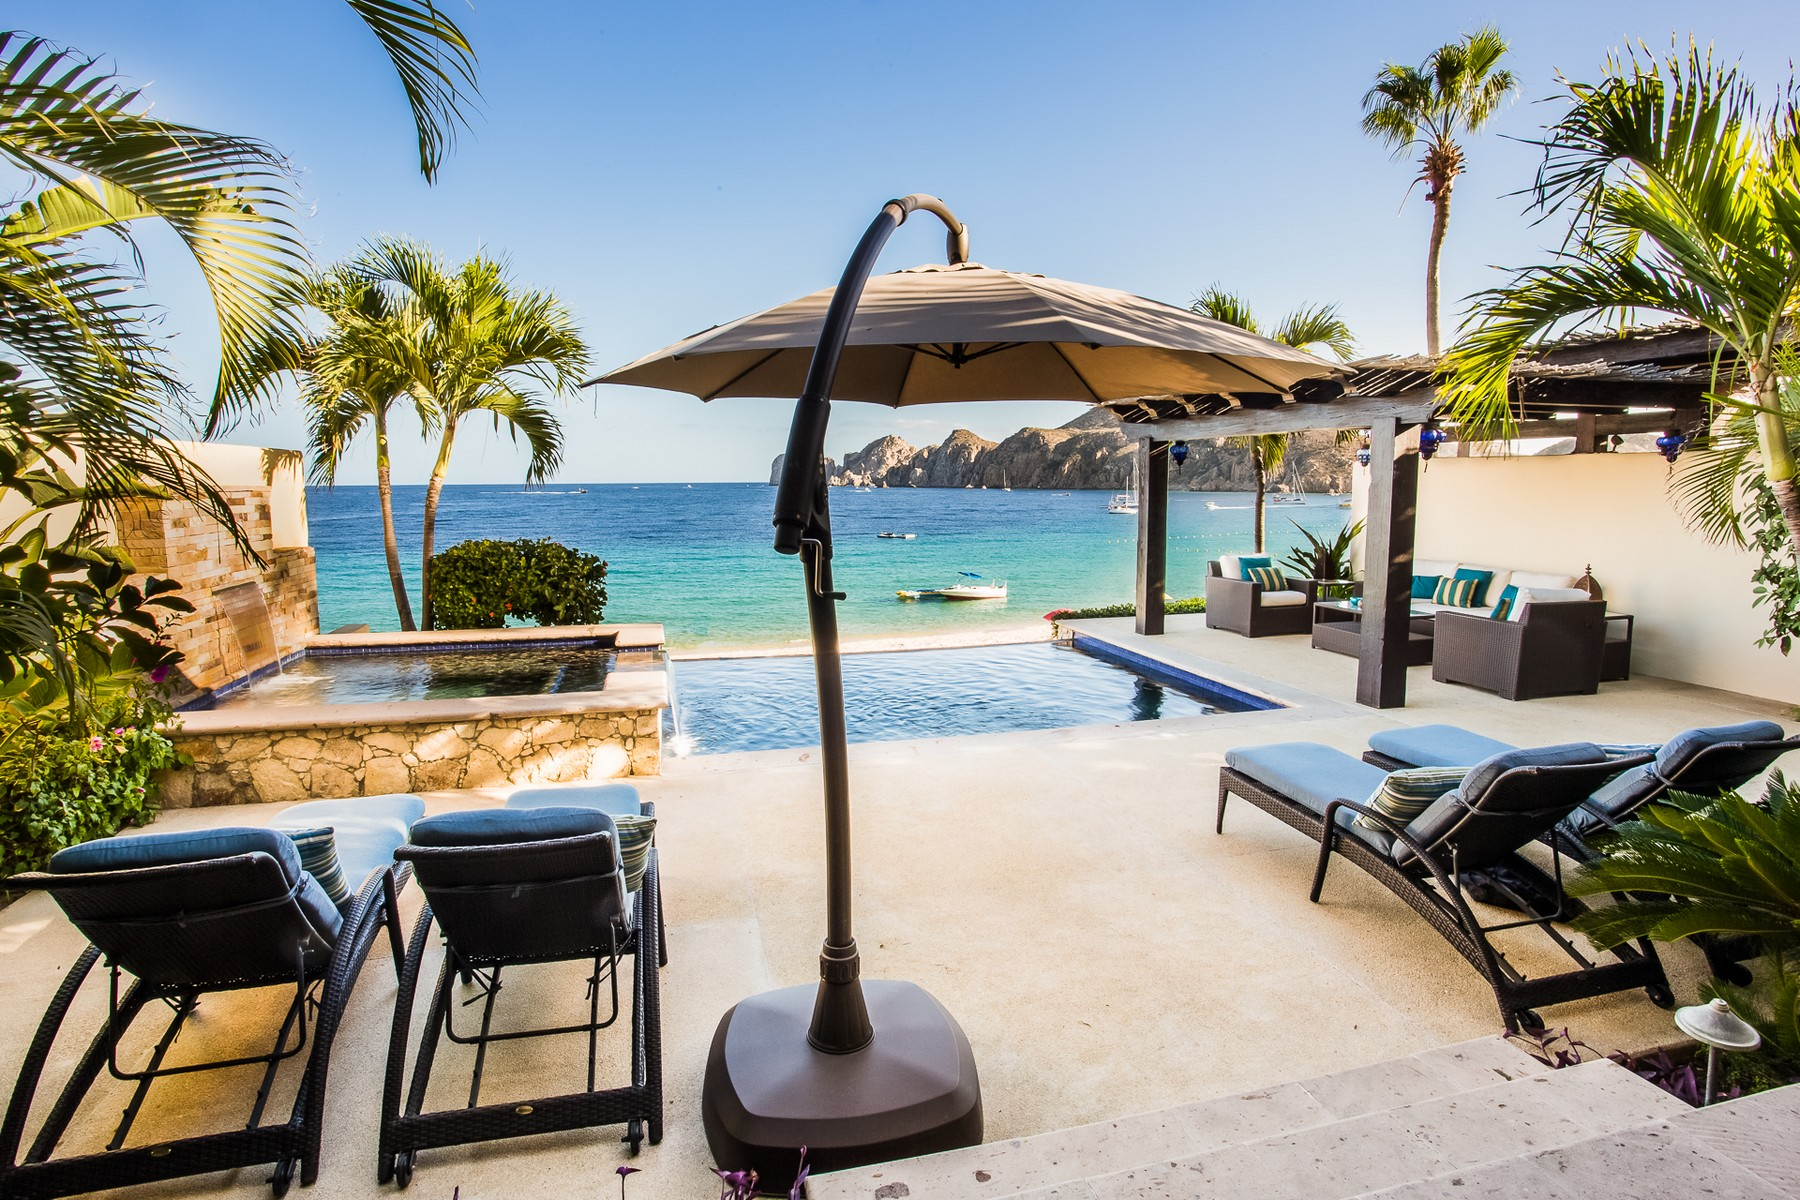 Additional photo for property listing at Villa Amanda Cabo San Lucas, Baja California Sur México